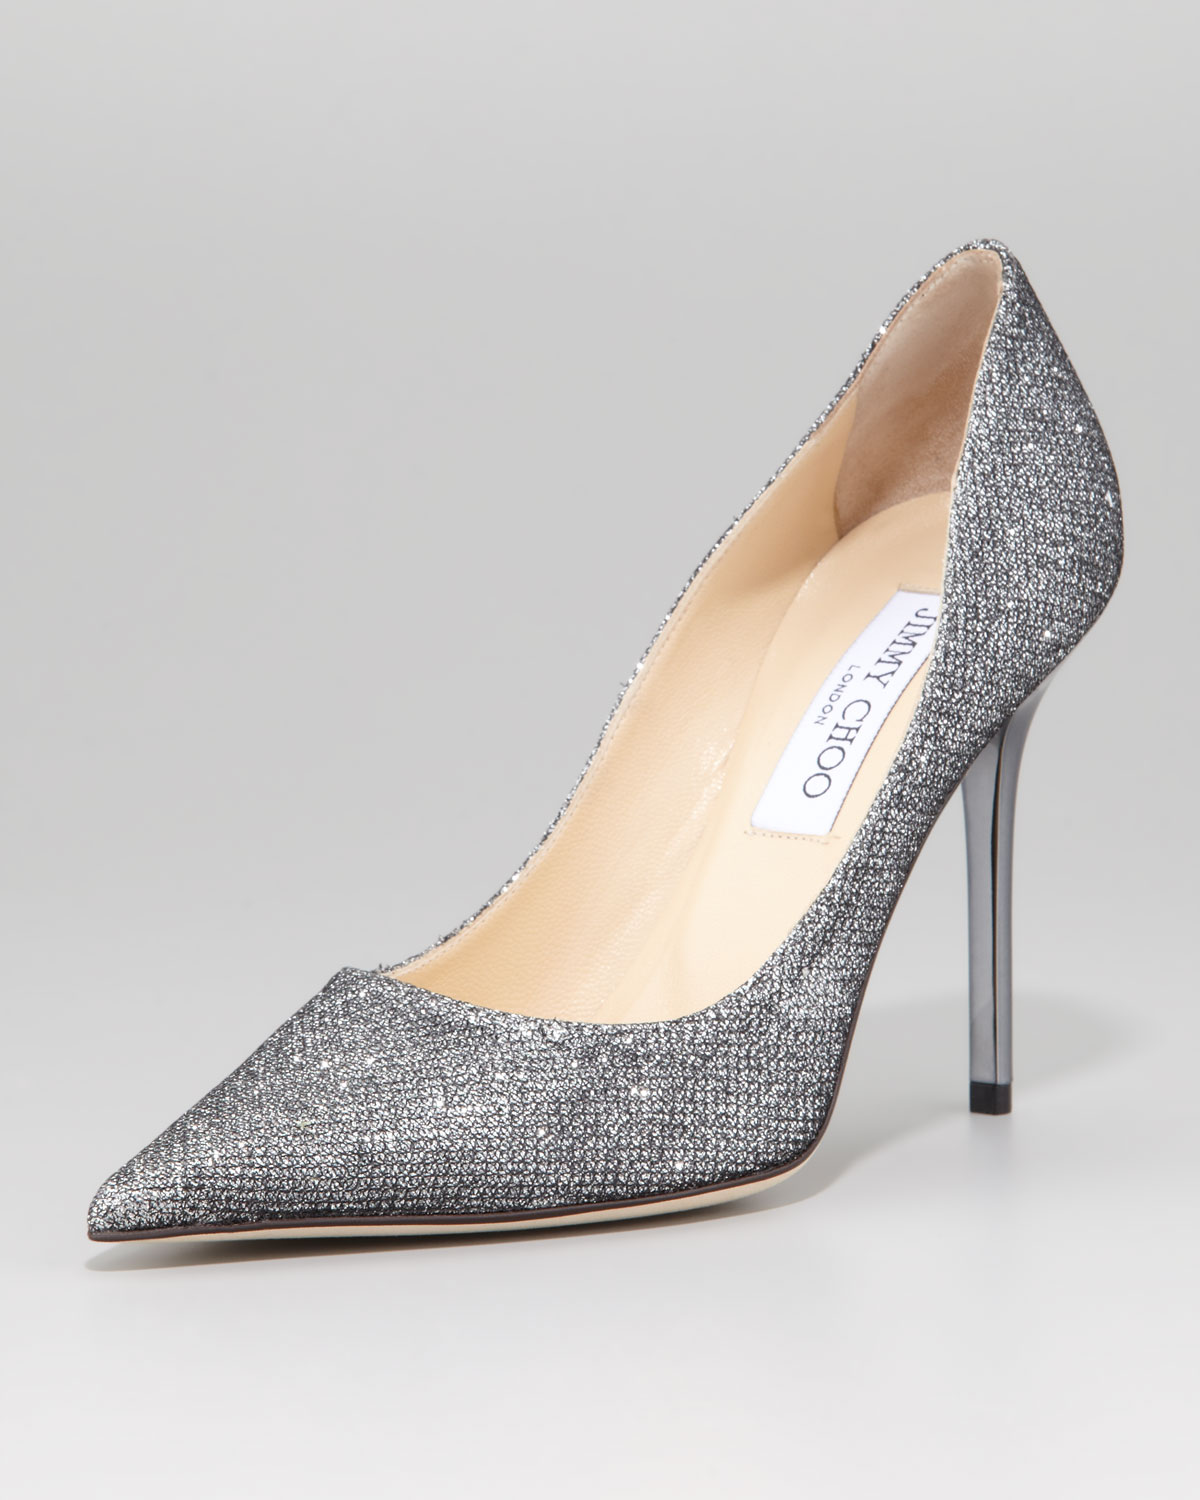 d383d2a7d4eb Lyst - Jimmy Choo Abel Glitter Pointed Pump Anthracite in Gray